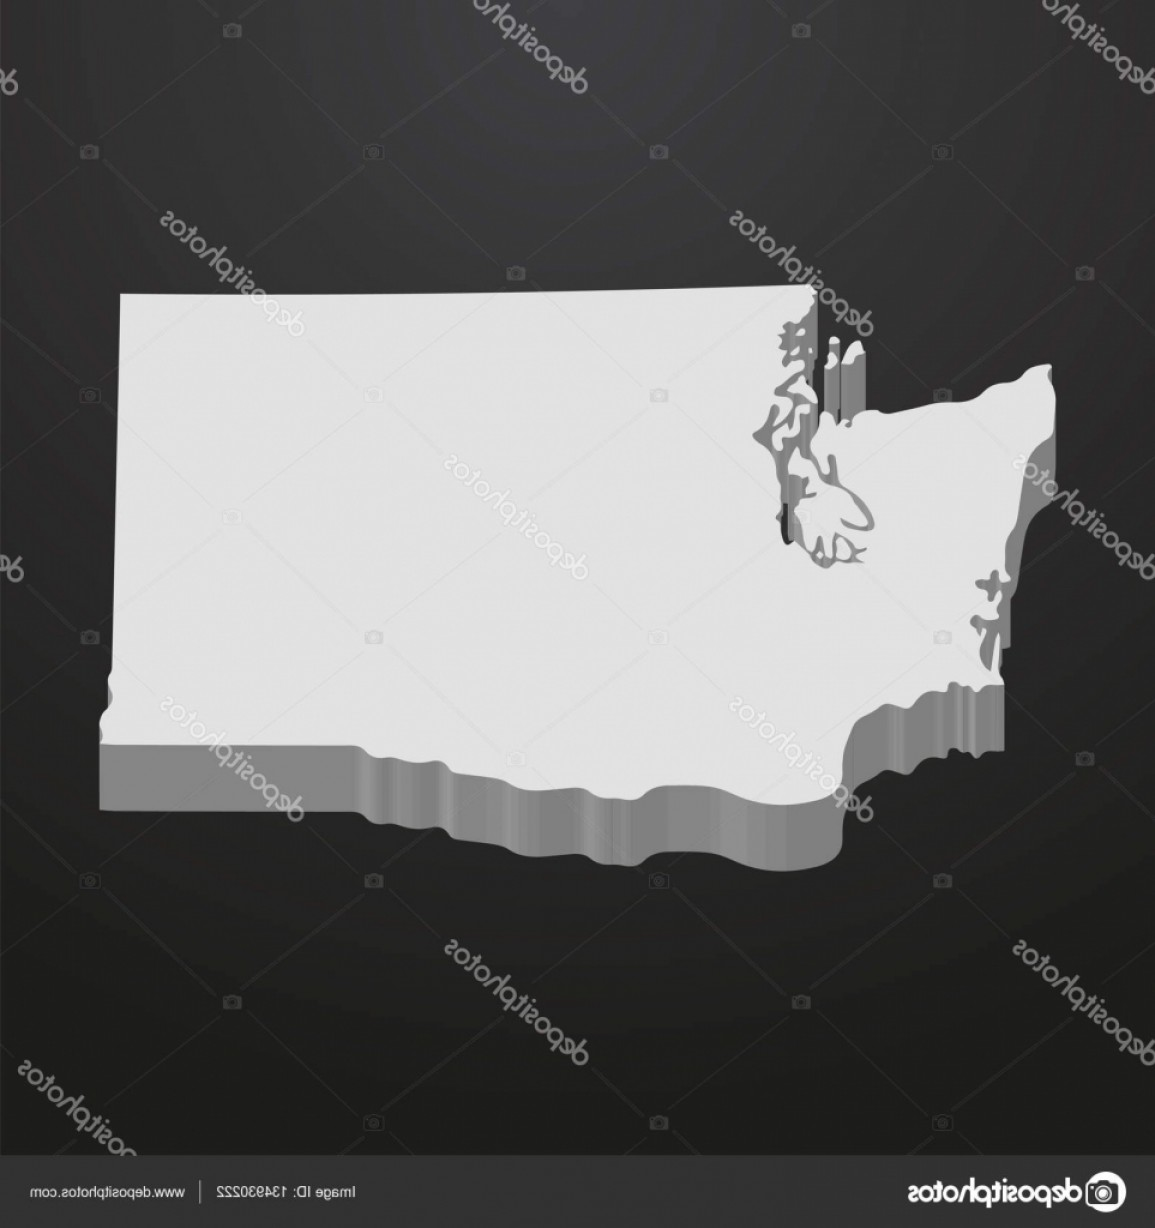 Washington State Map Vector: Stock Illustration Washington State Map In Gray